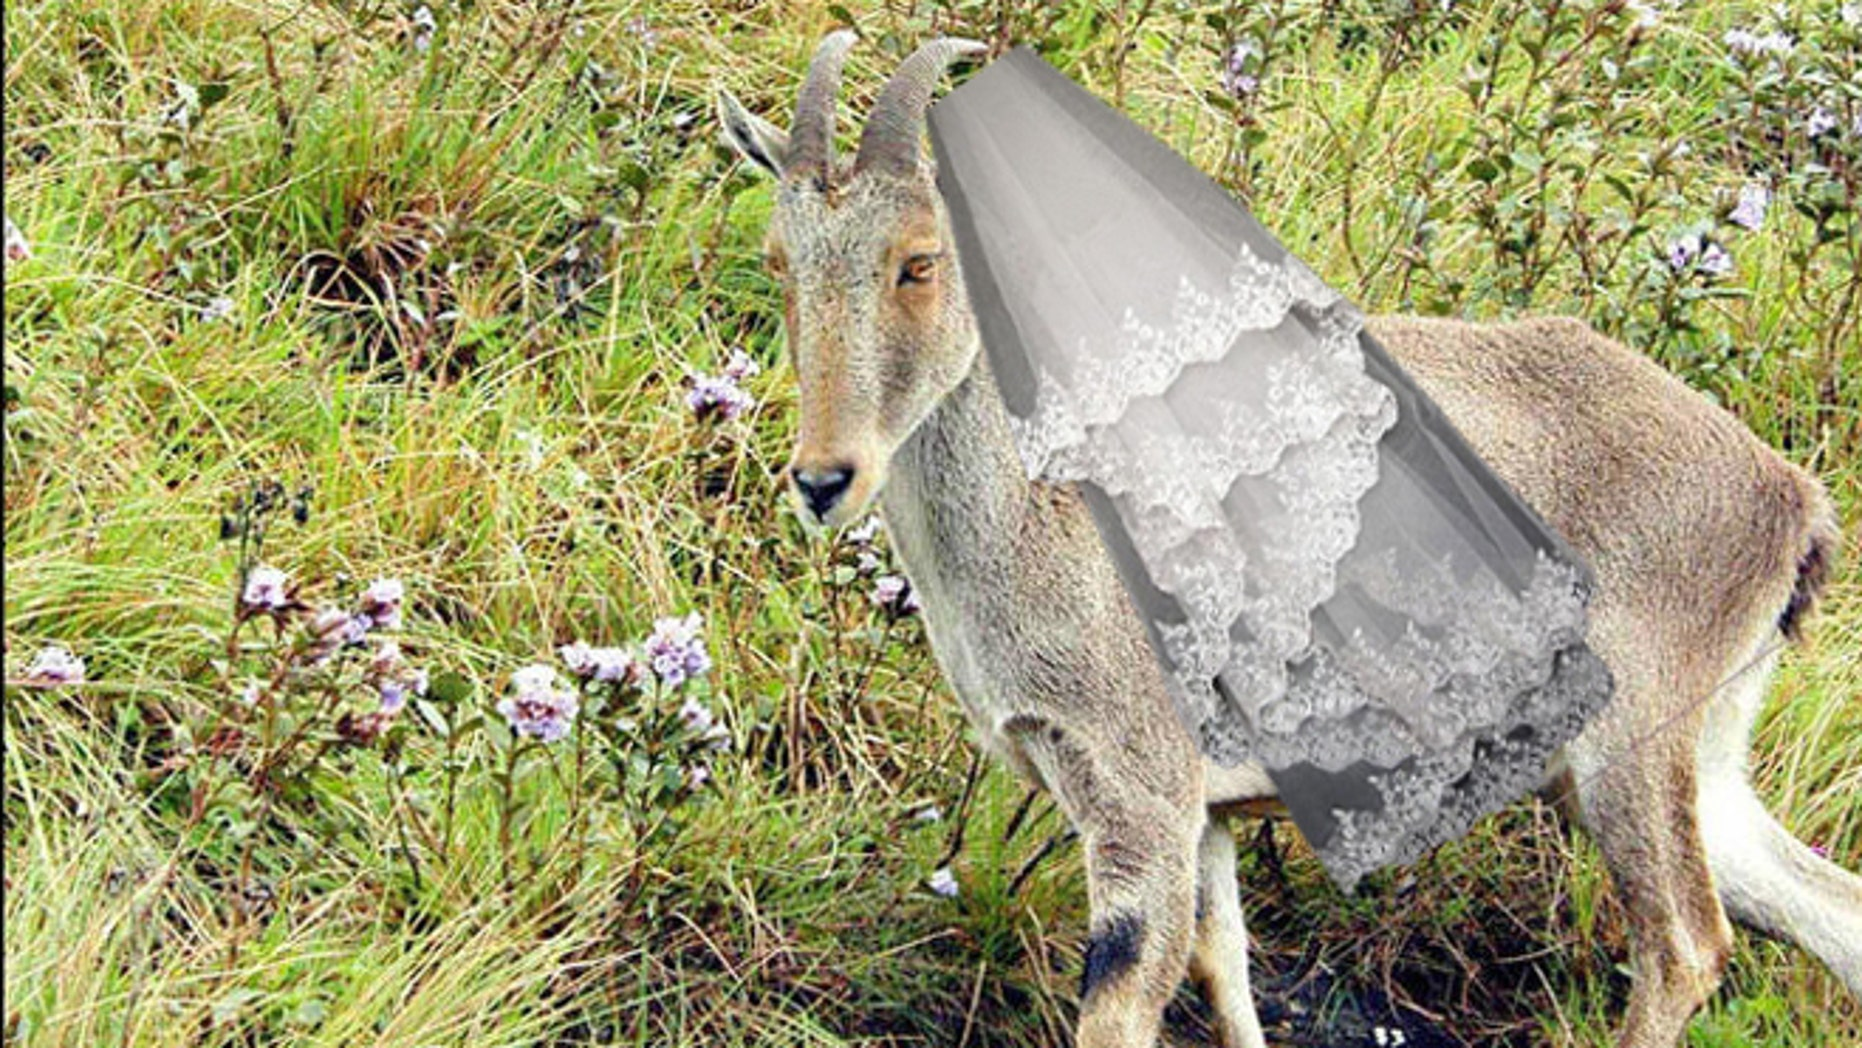 A Nilgiri Tahr, an endangered wild goat species, walks on a hill covered with neelakurinji flowers, or strobilanthus, in Munnar, in the southern Indian state of Kerala, Thursday, Sept. 14, 2006. The flower blooms once in twelve year. (AP Photo)